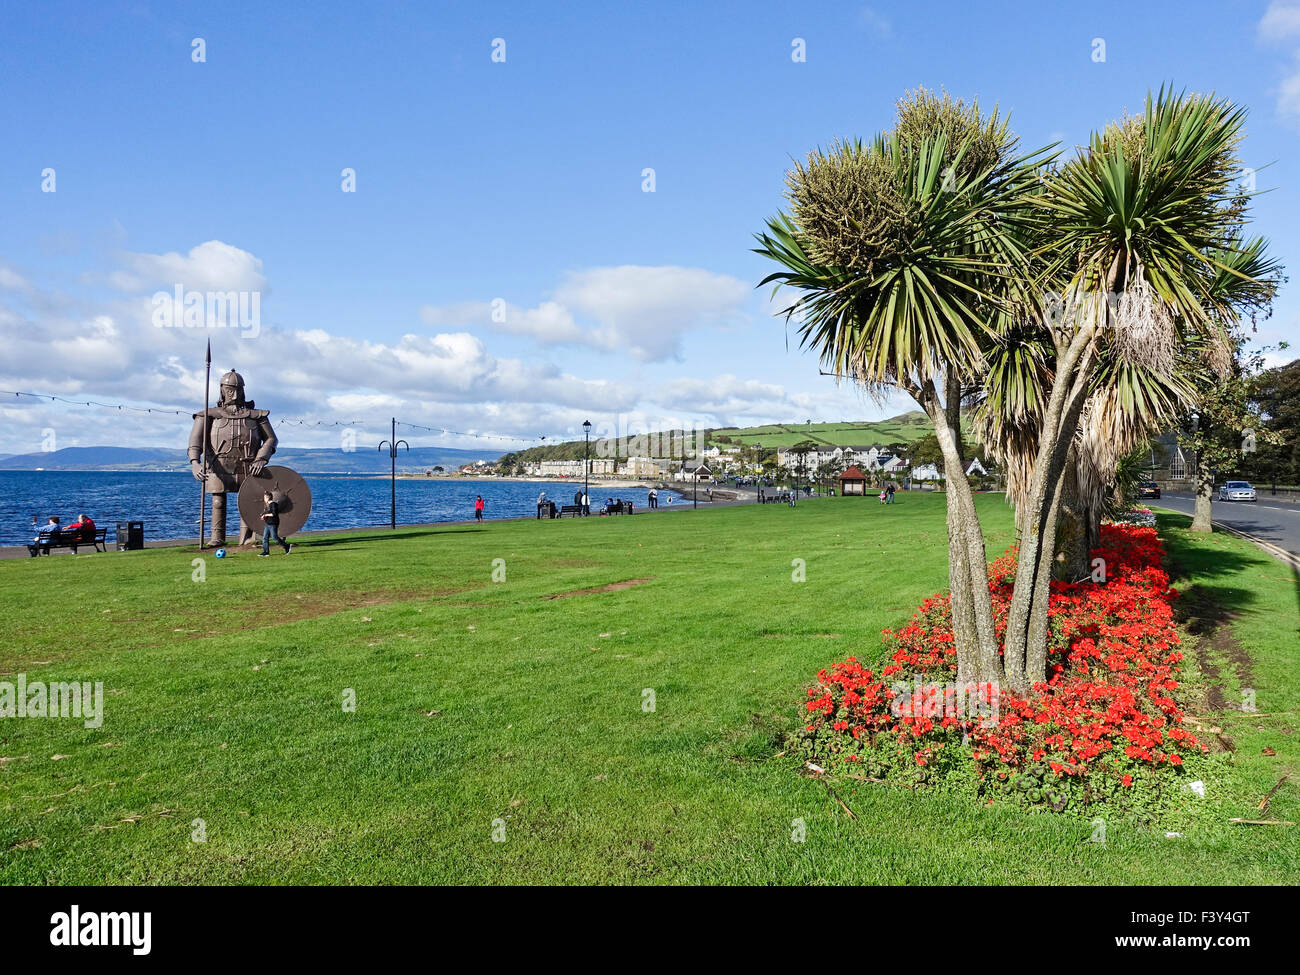 Statue of Magnus the Viking standing at the seafront in Largs North Ayrshire Scotland - Stock Image